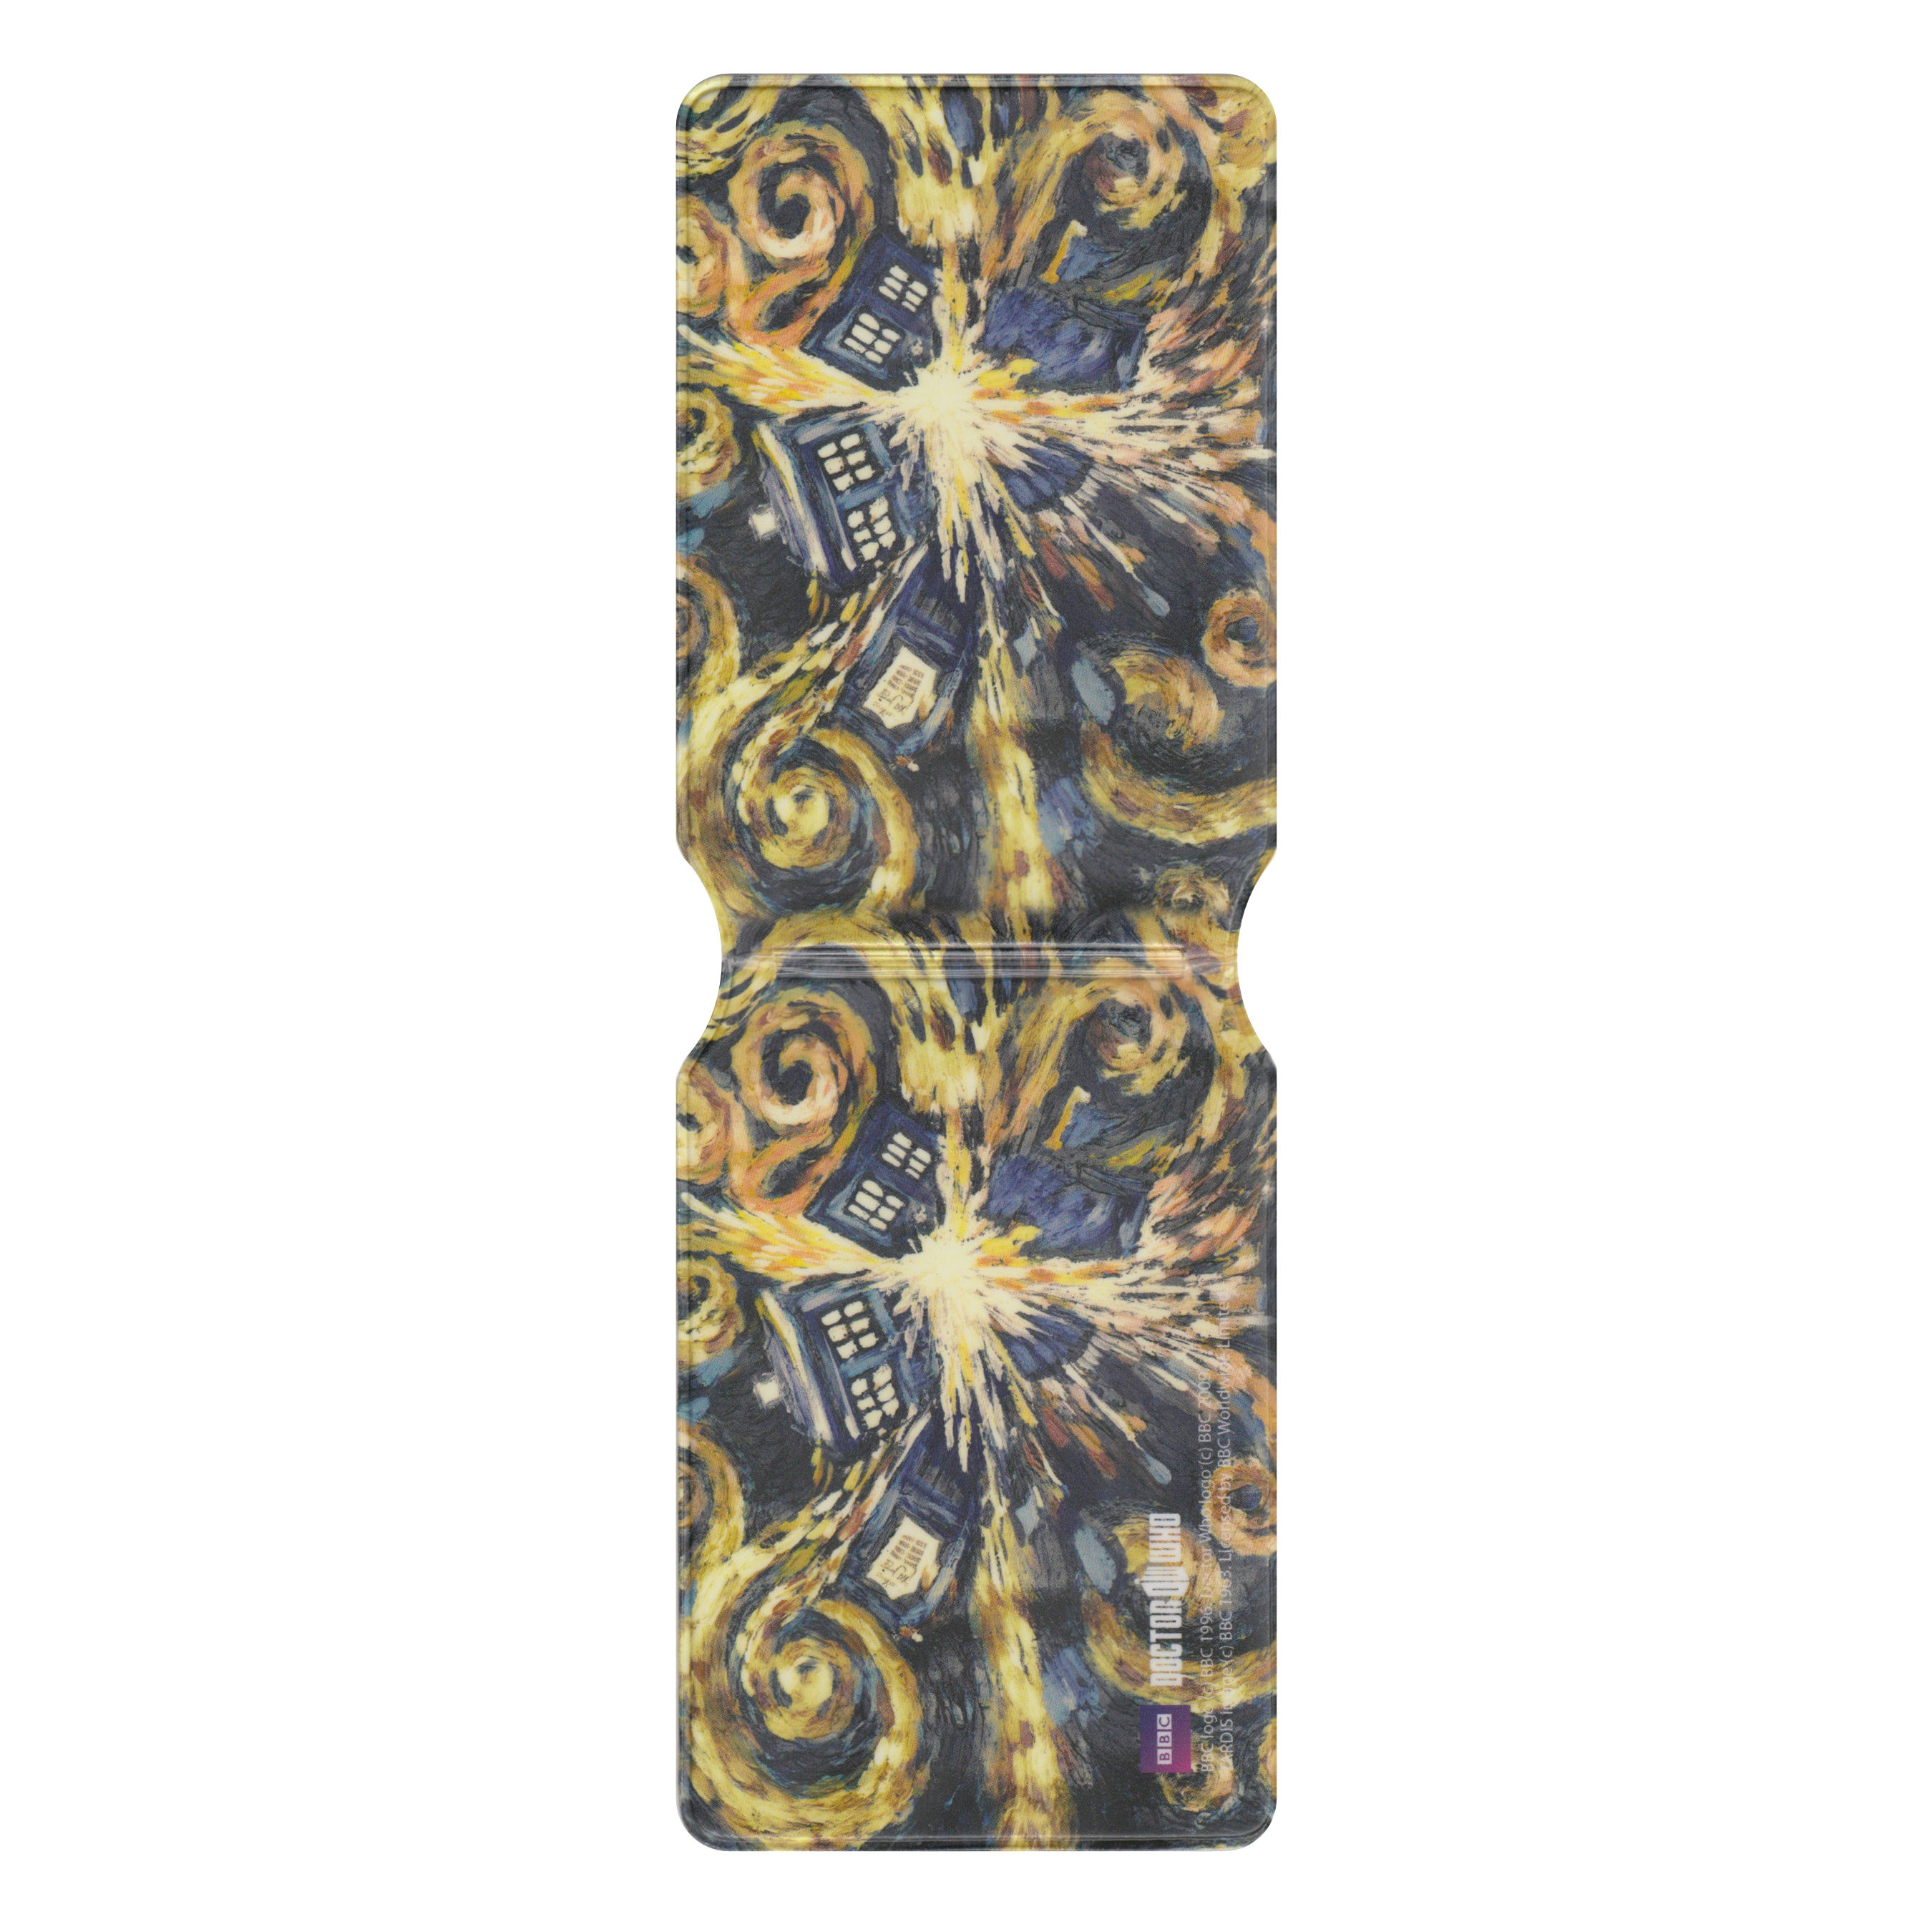 Van Gogh Exploding Tardis Travel/Oyster Card Holder